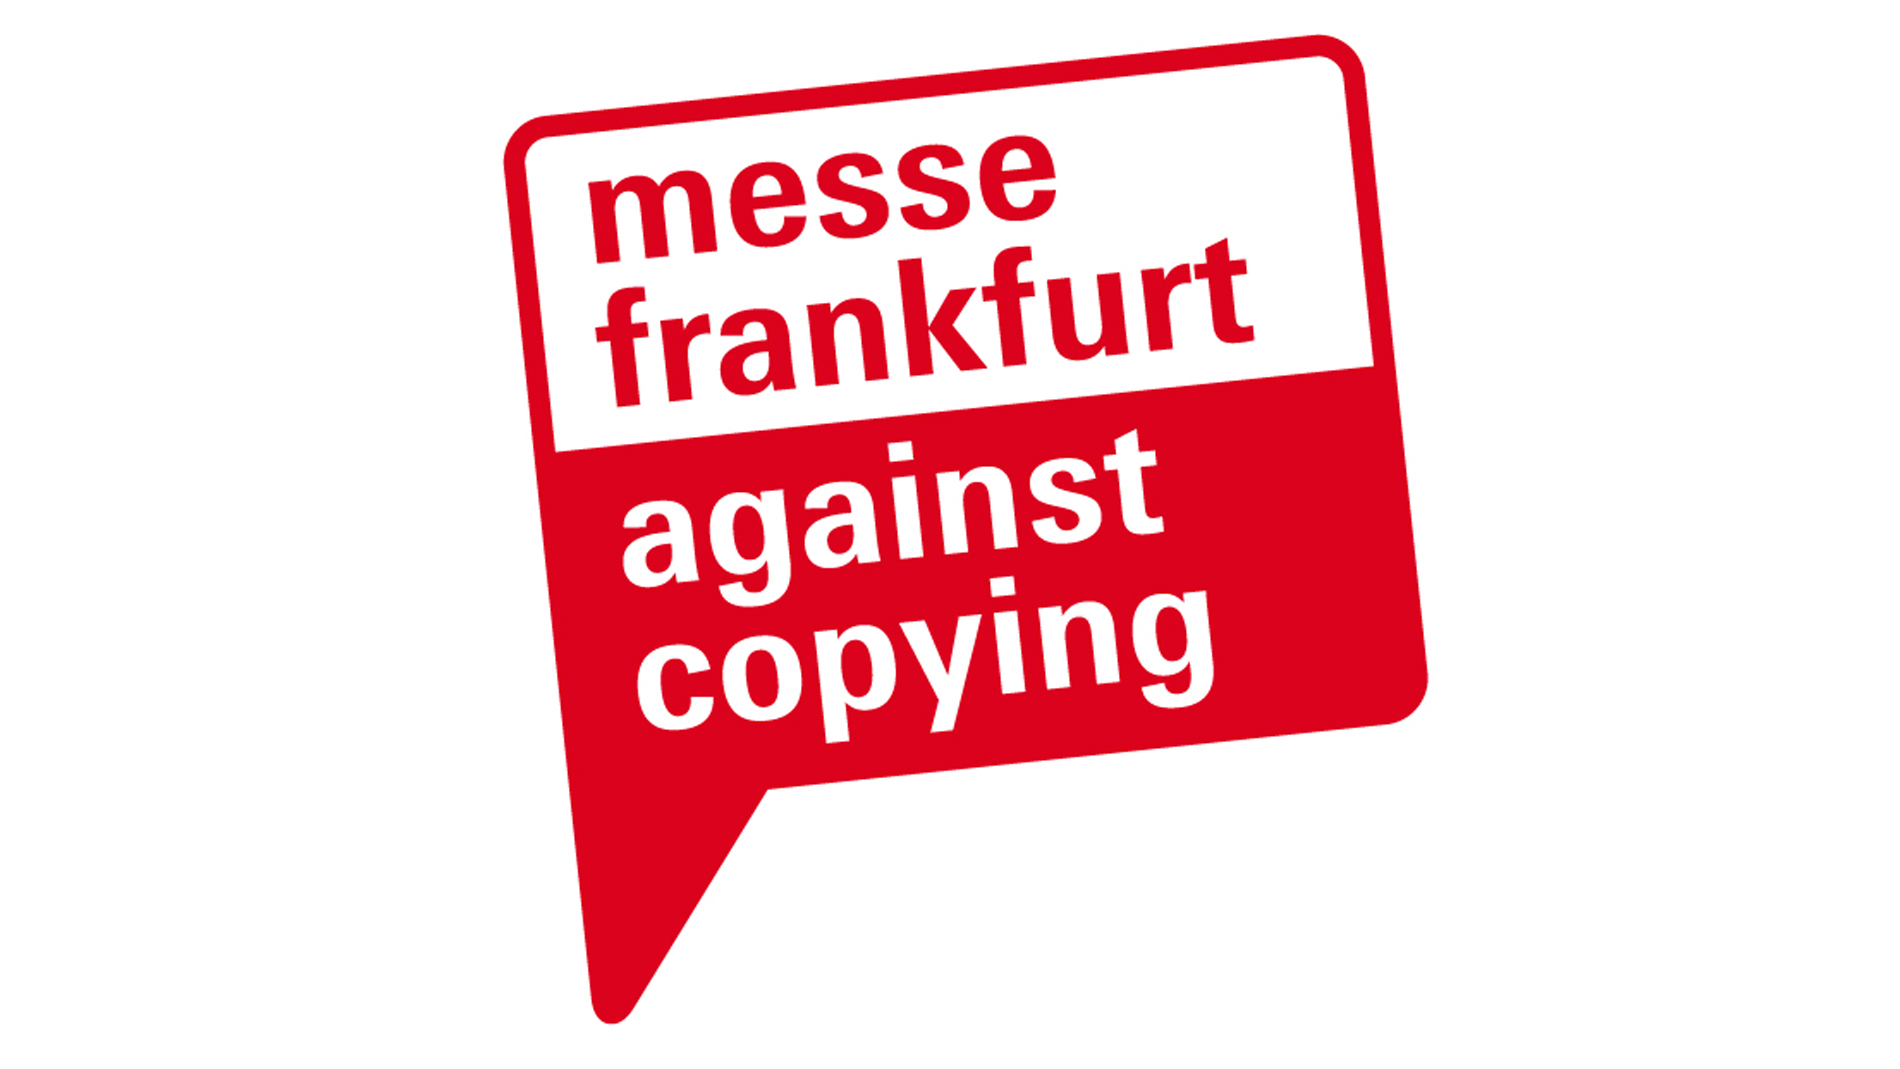 Against_copying